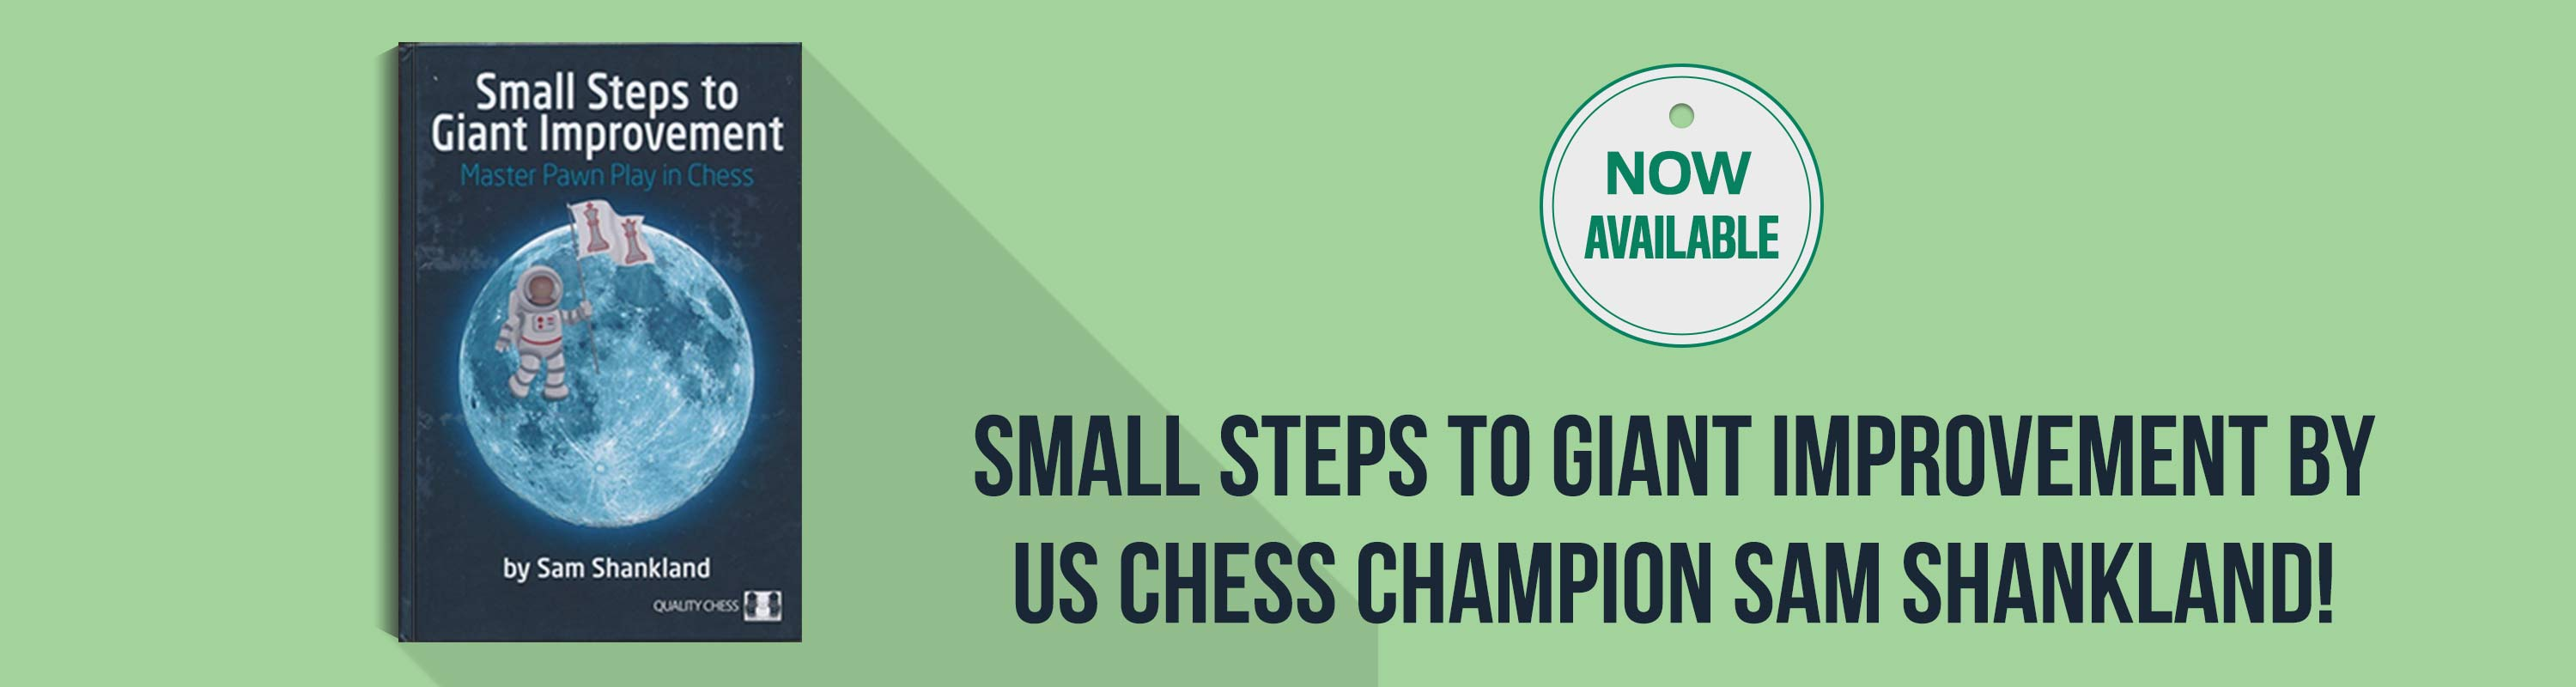 Now Available: Small Steps to Giant Improvement by US Chess Champion Sam Shankland